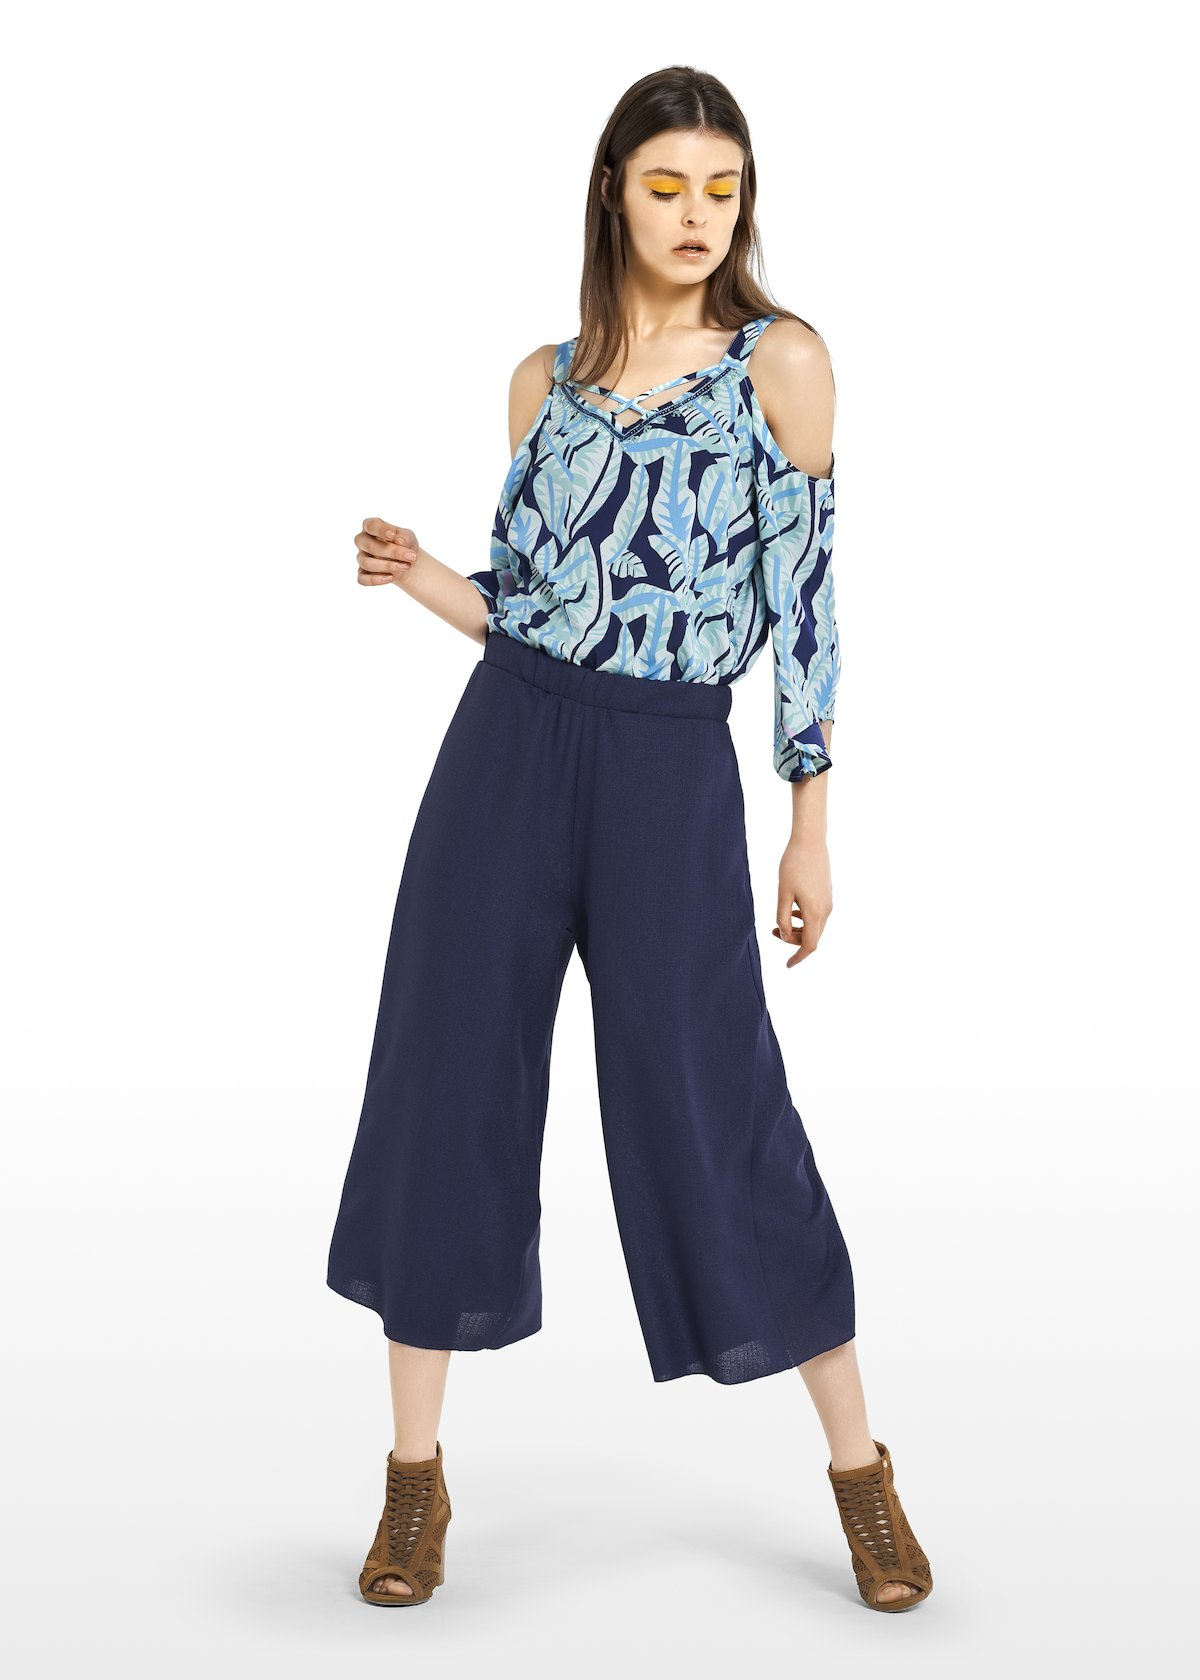 Prisco Capri trousers on blue mat fabric - Medium Blue - Woman - Category image